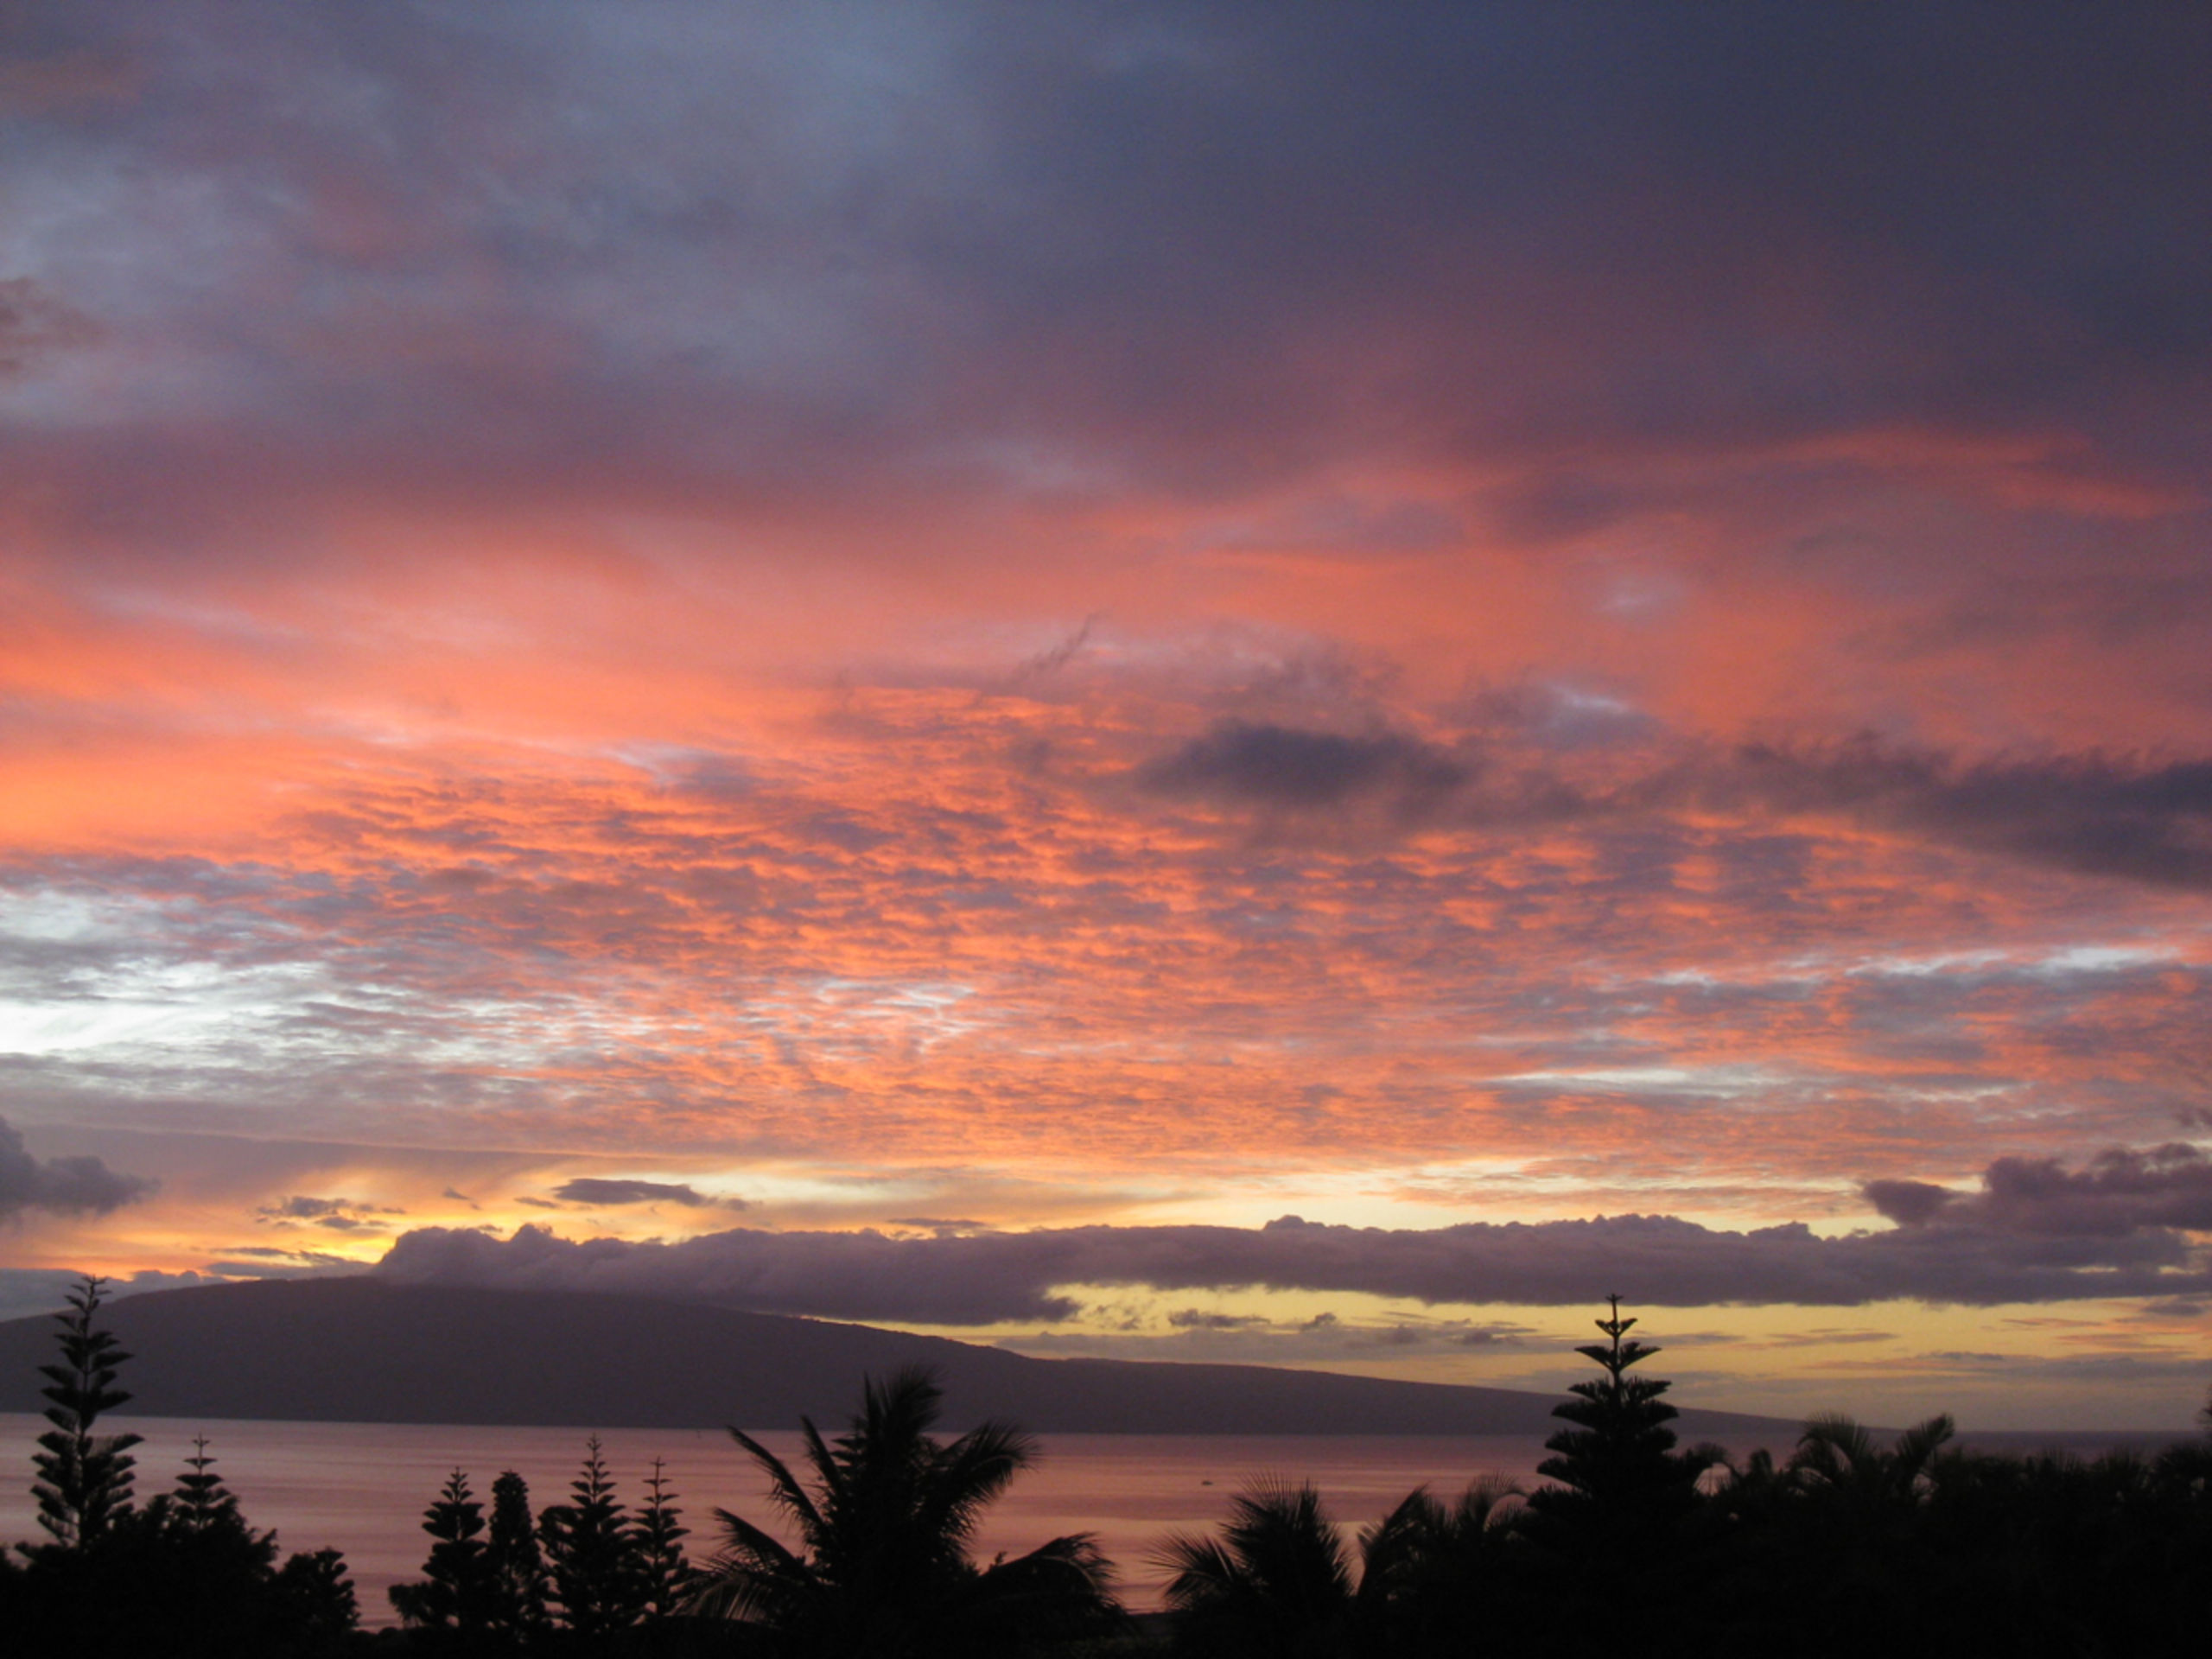 Sunset view from 199 Paia Pohaku